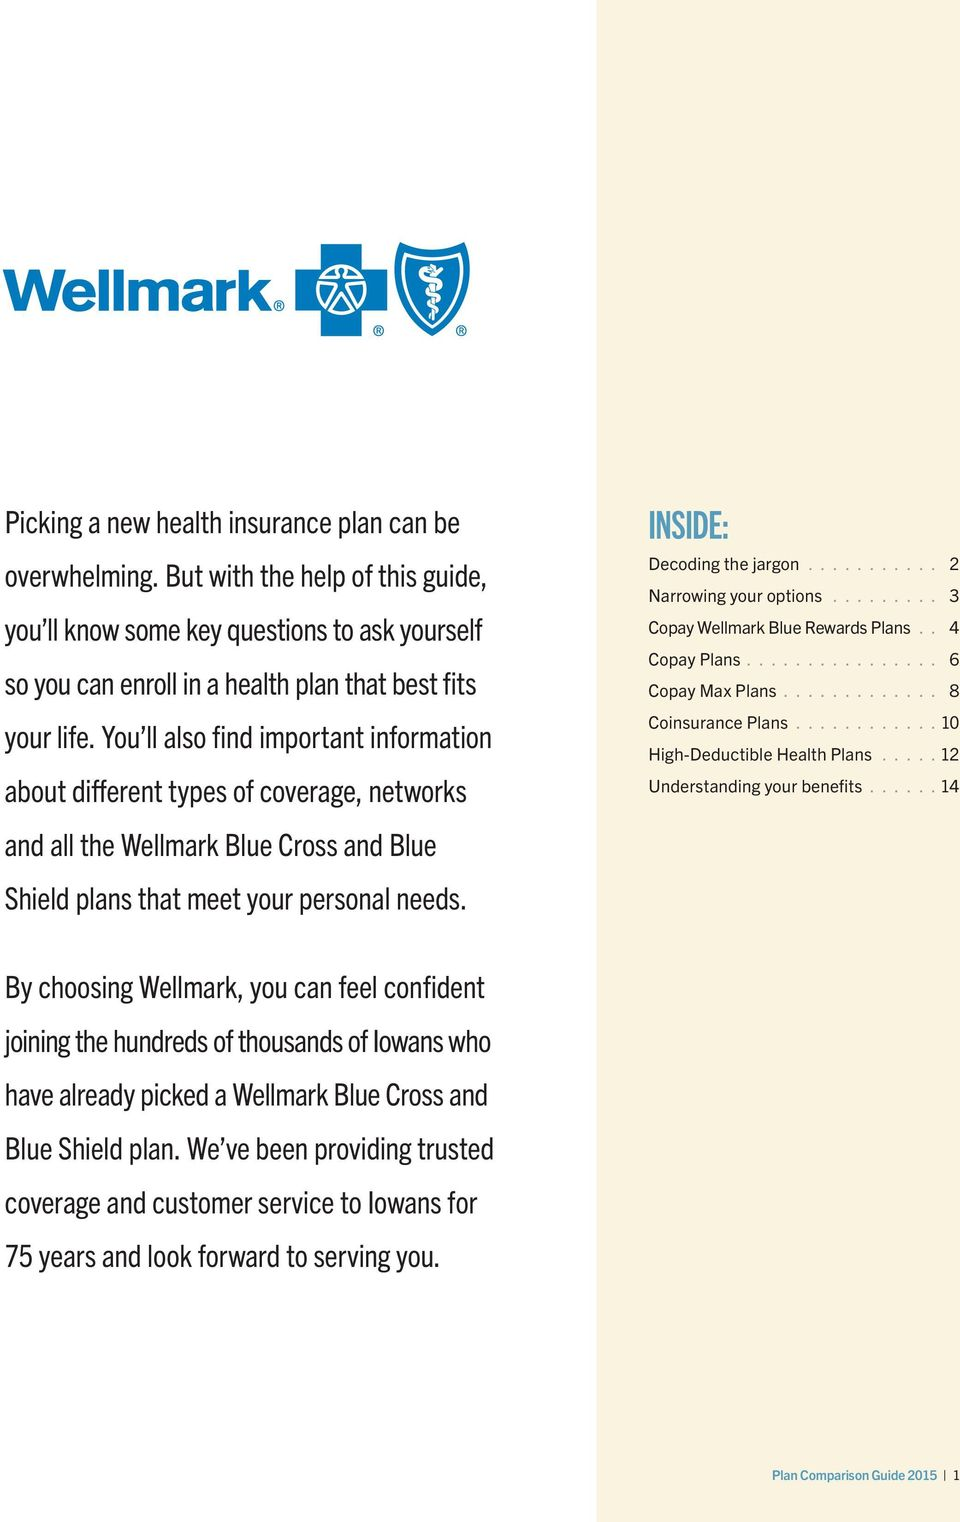 Plans 8 Plans 10 High- Health Plans 12 Understanding your benefits 14 and all the Wellmark Blue Cross and Blue Shield plans that meet your personal needs.